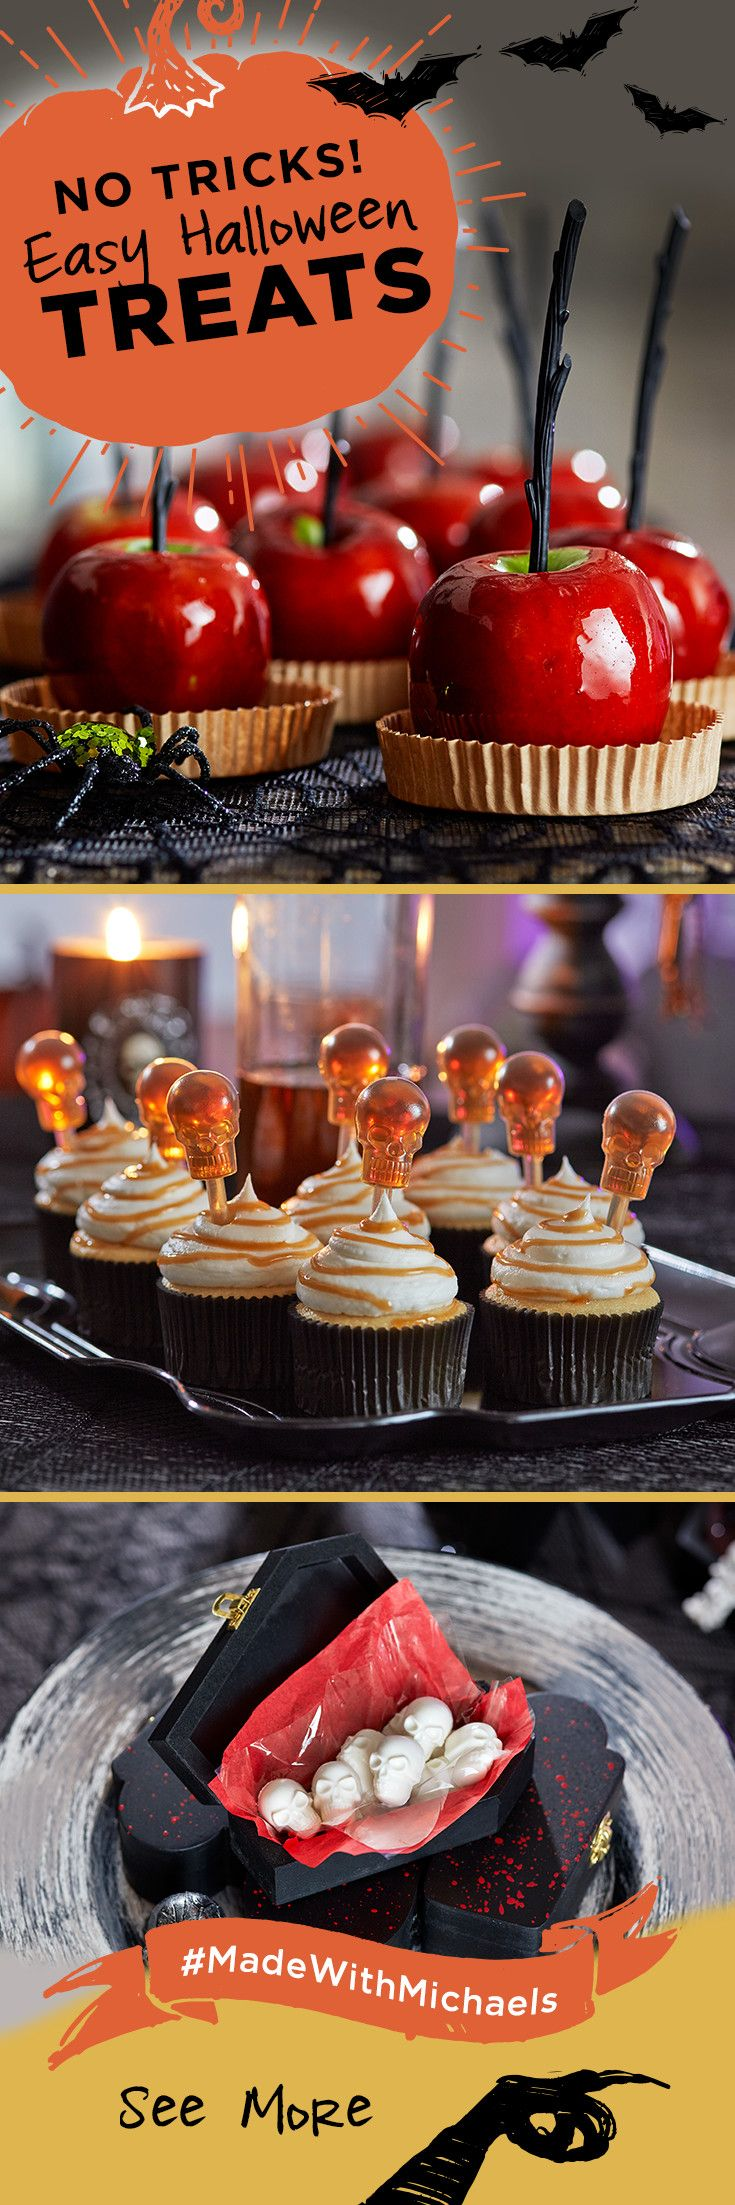 these easy to make halloween treats are sure to be a hit at your halloween party learn how to make these treats and get even more ideas at michaels - Michaels Halloween